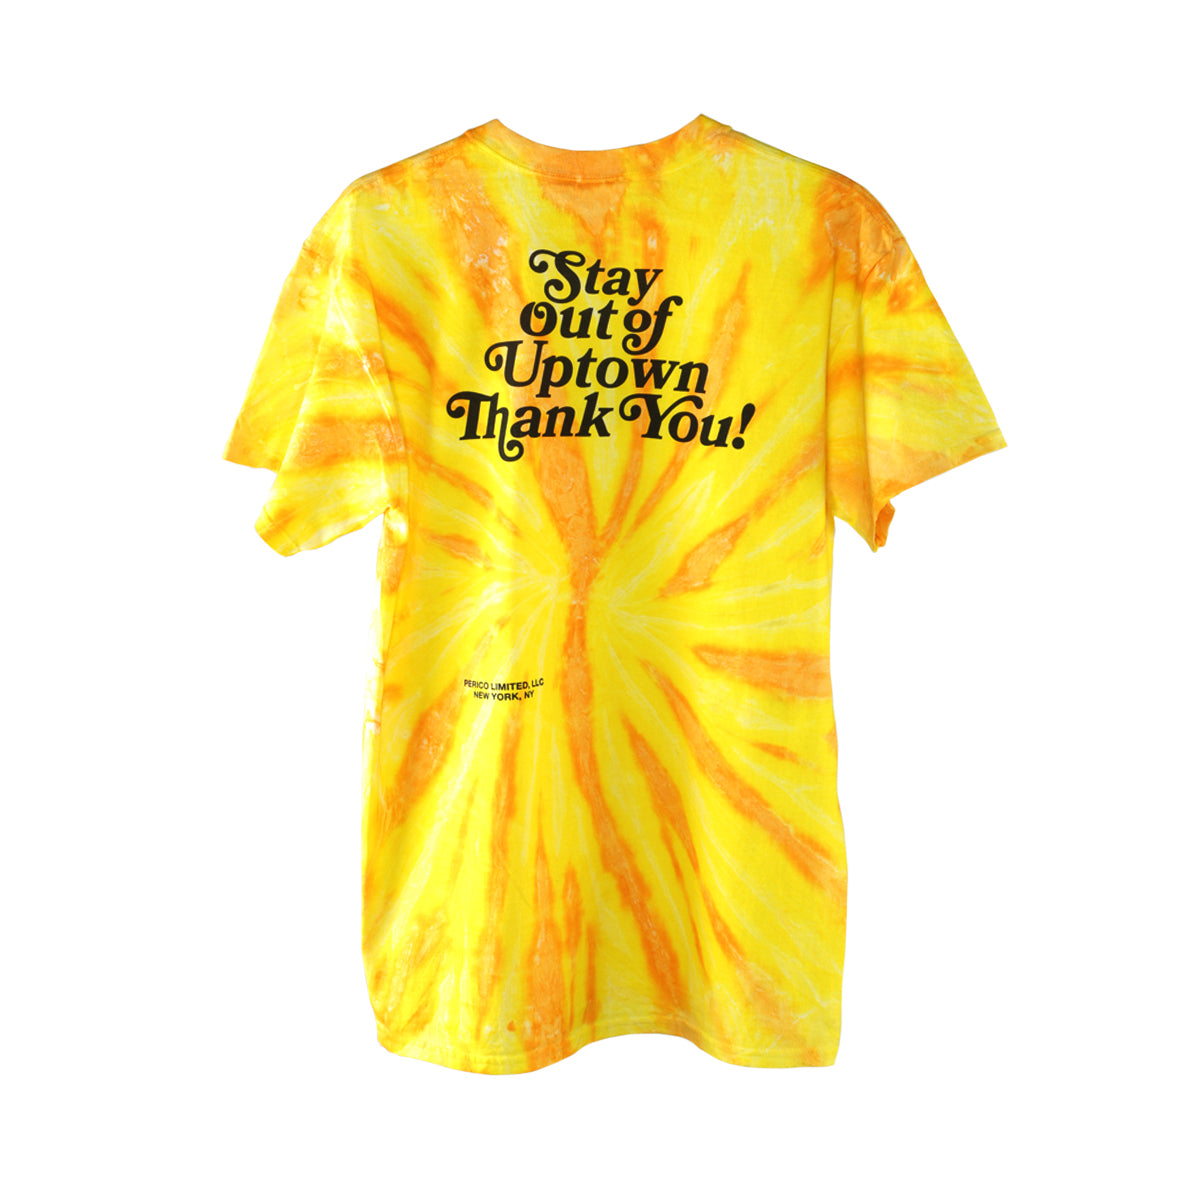 Stay Out of Uptown Tie Dye - Neon Pineapple